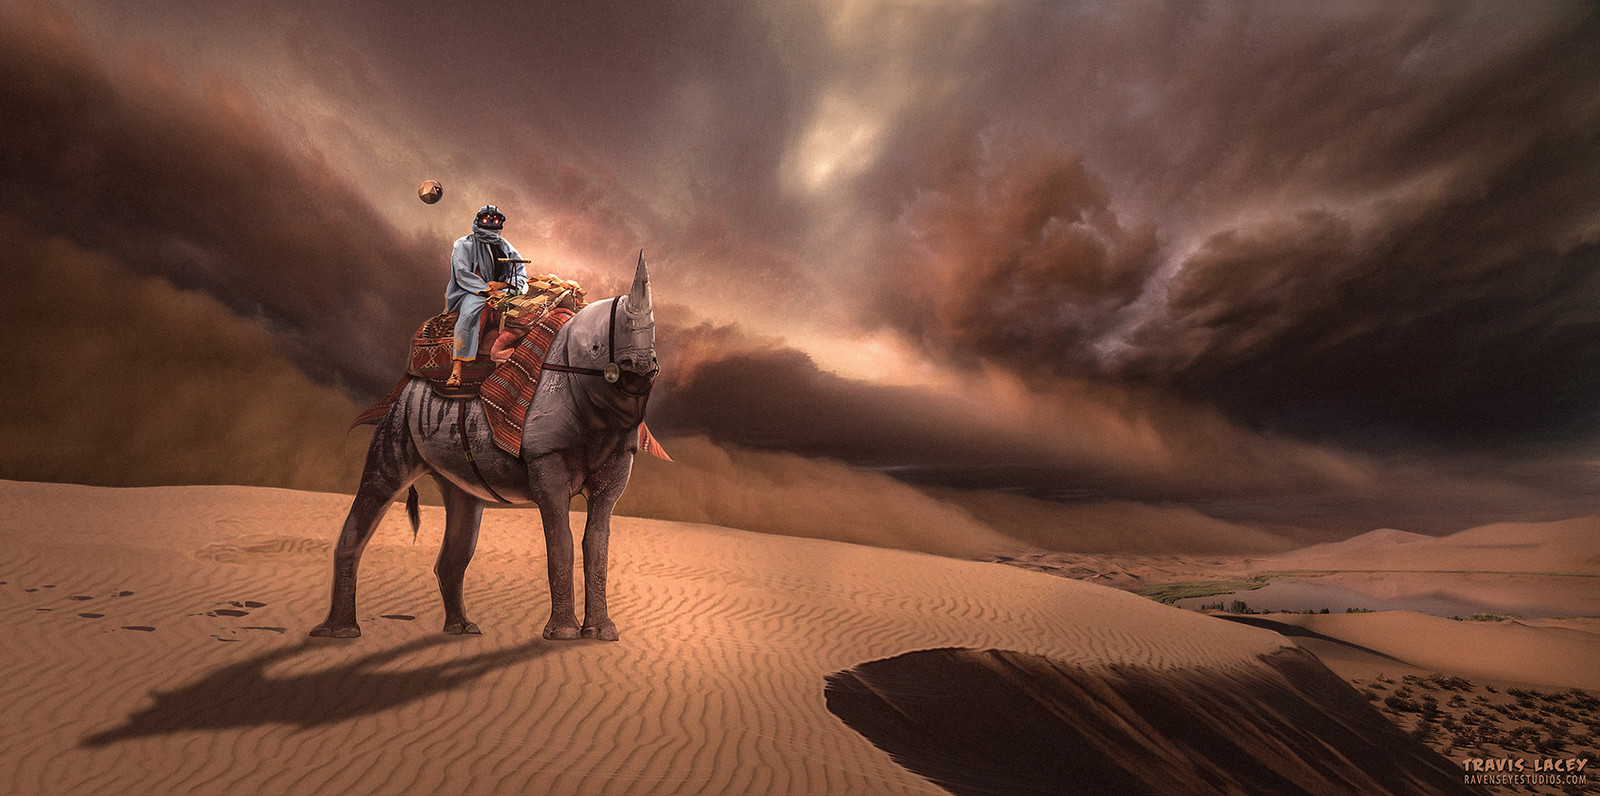 The nomad and the storm